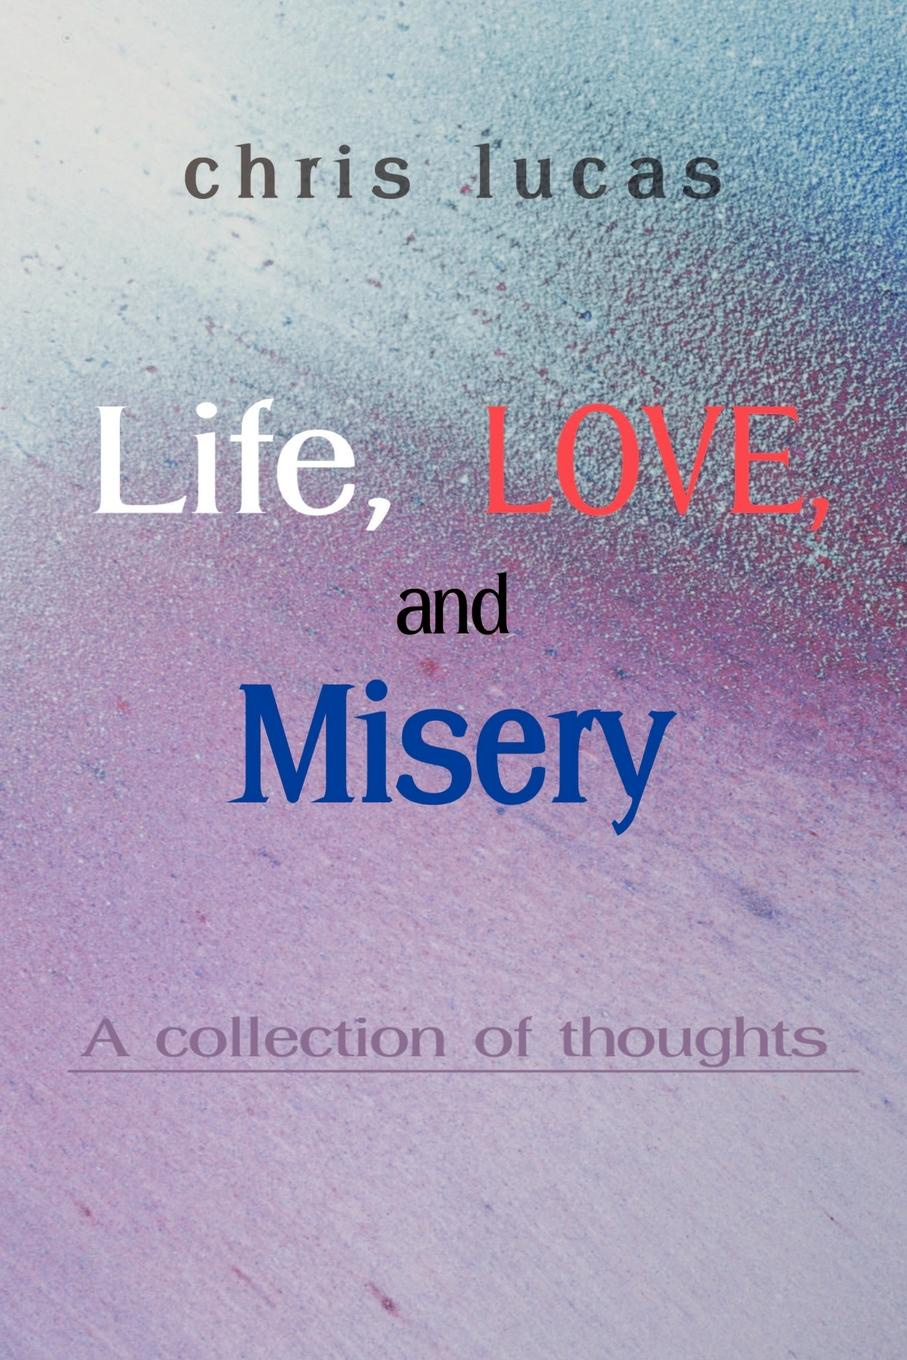 Life, Love, and Misery. A Collection of Thoughts. Chris Lucas